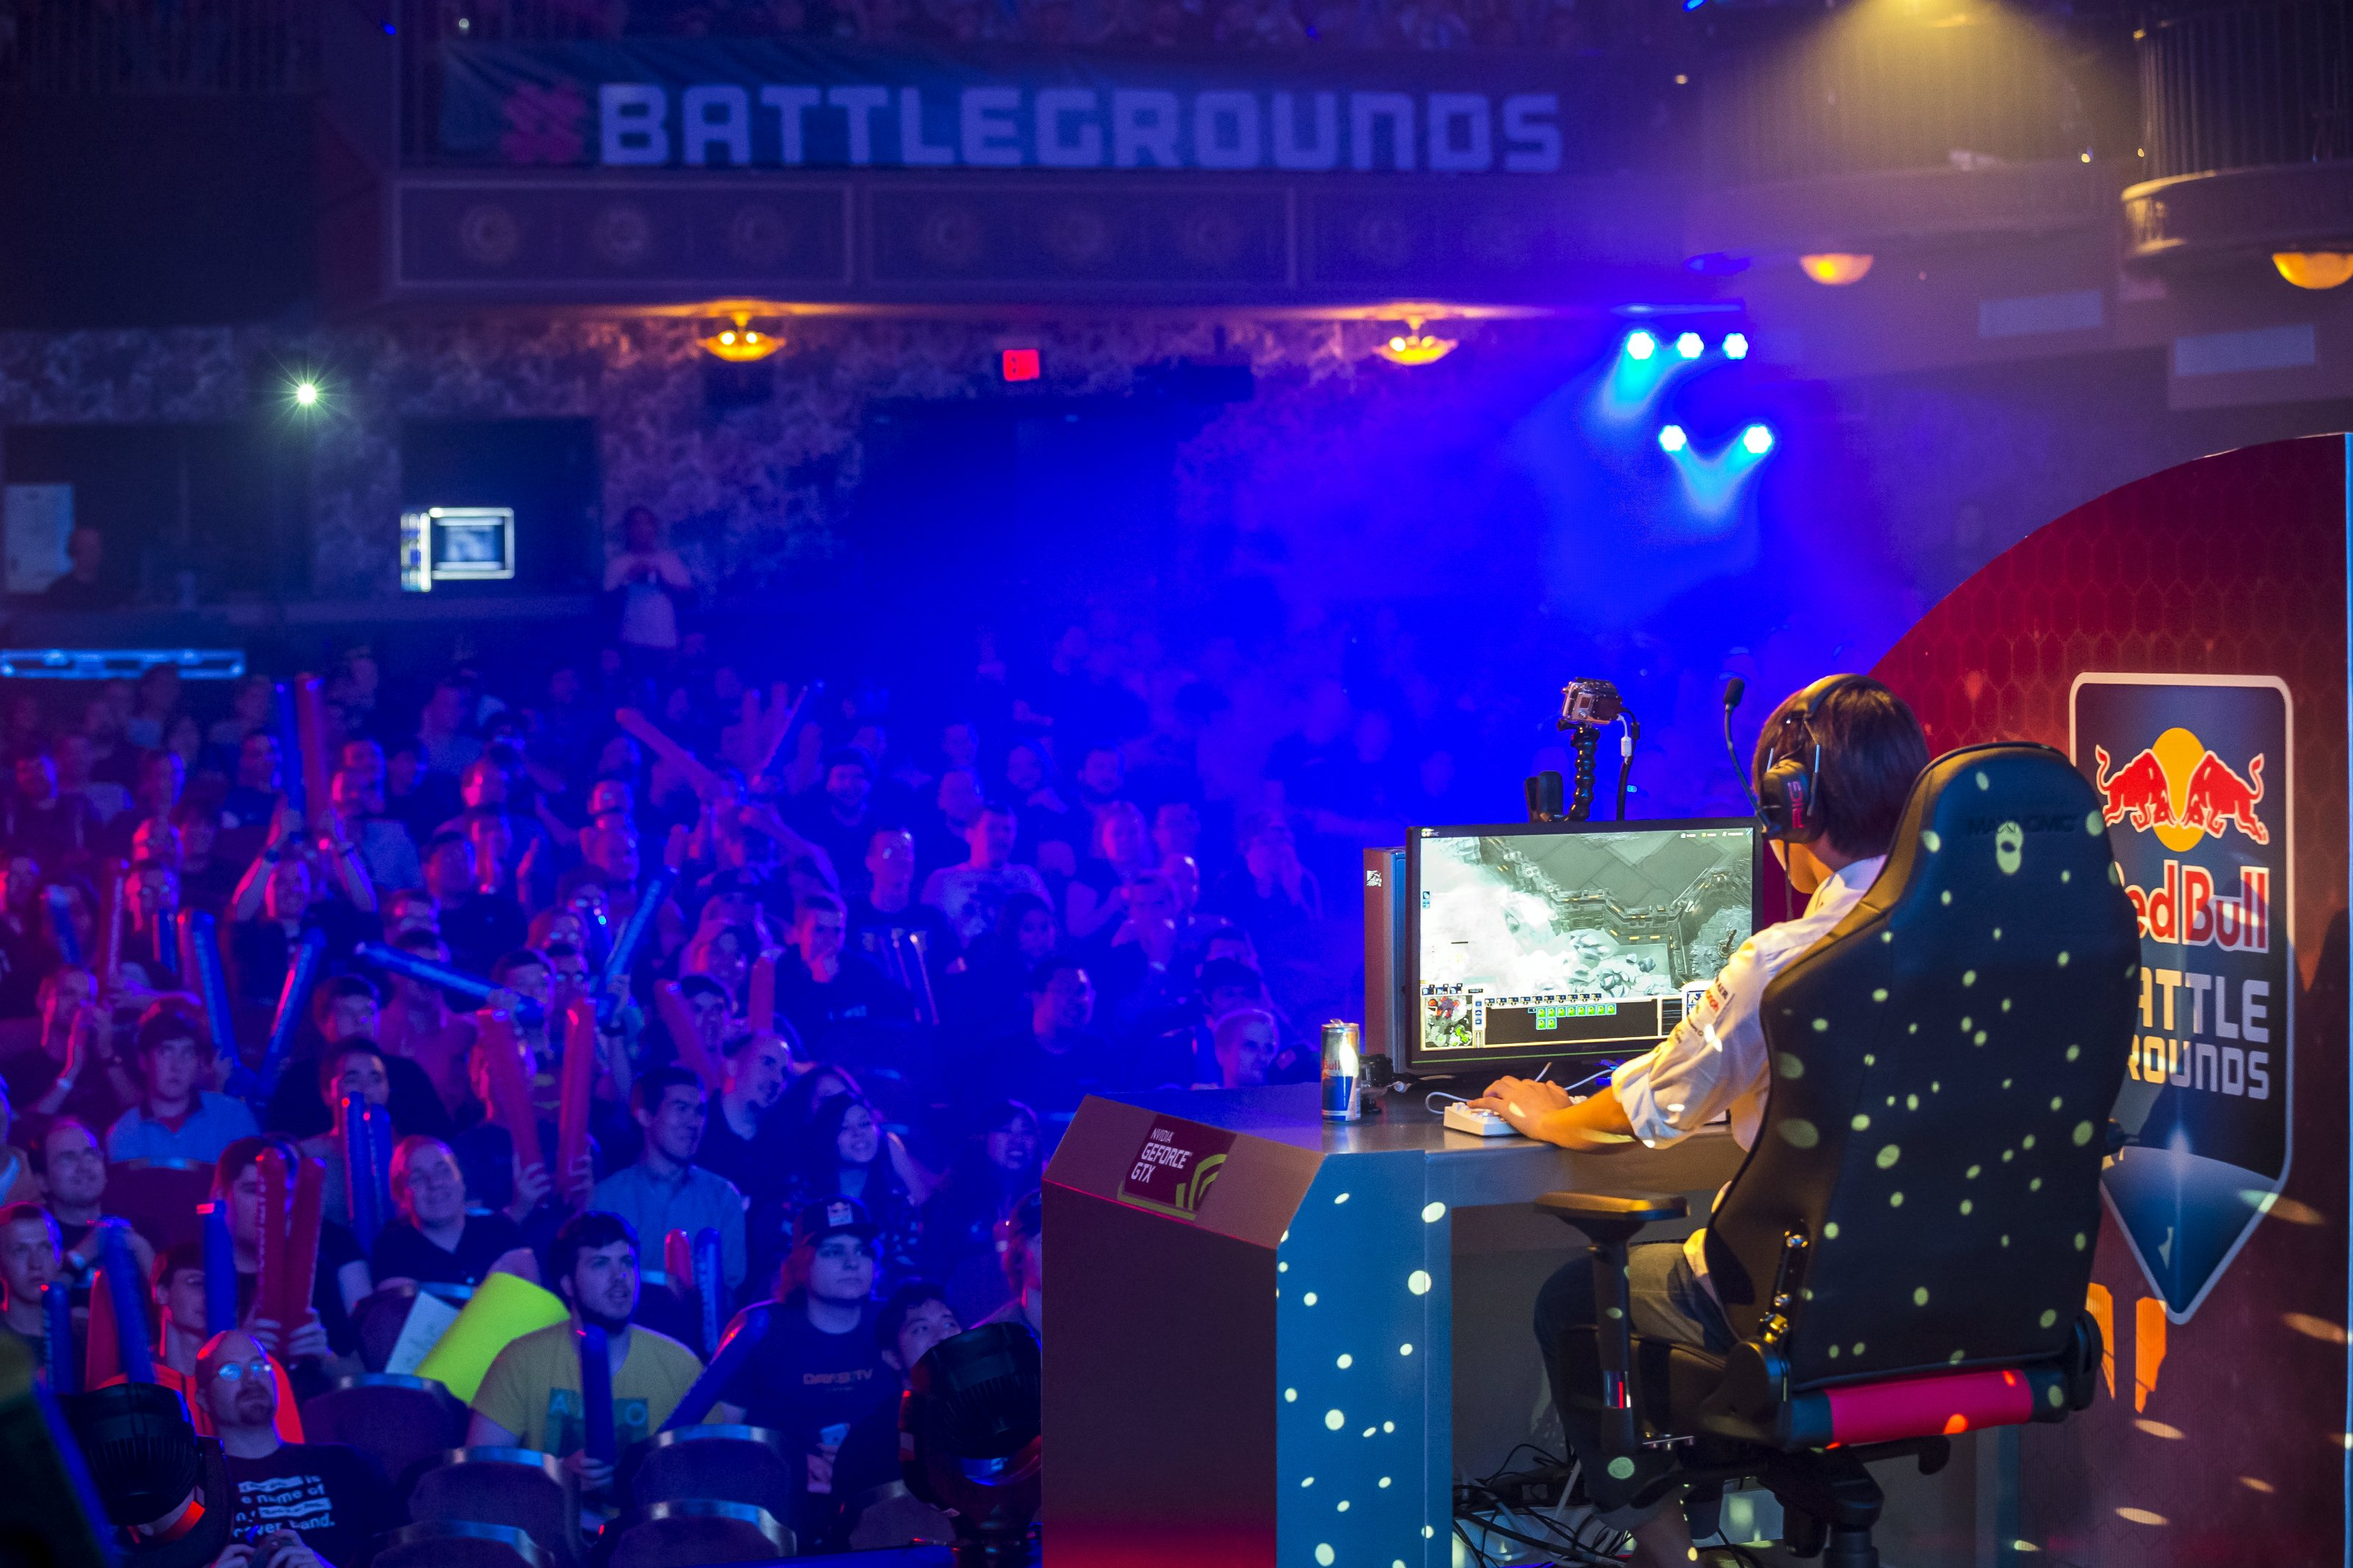 Red Bull has sponsored its own Halo, StarCraft II and Dota 2 eSports tournaments